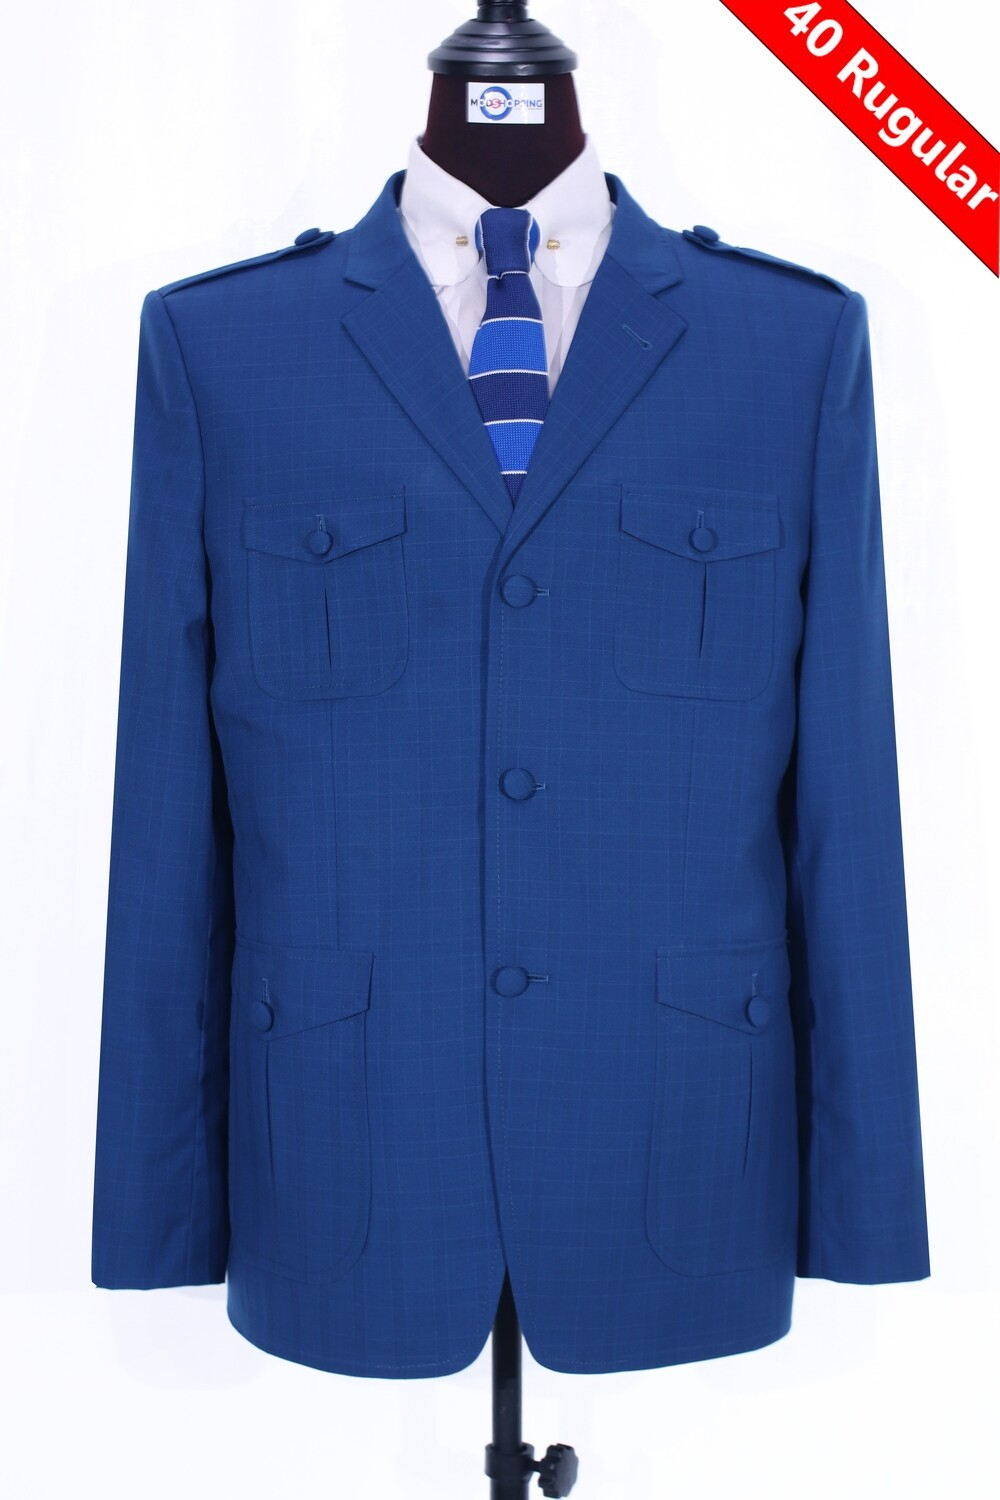 Sale Only This Jacket    Blue Plaid Wool Jacket